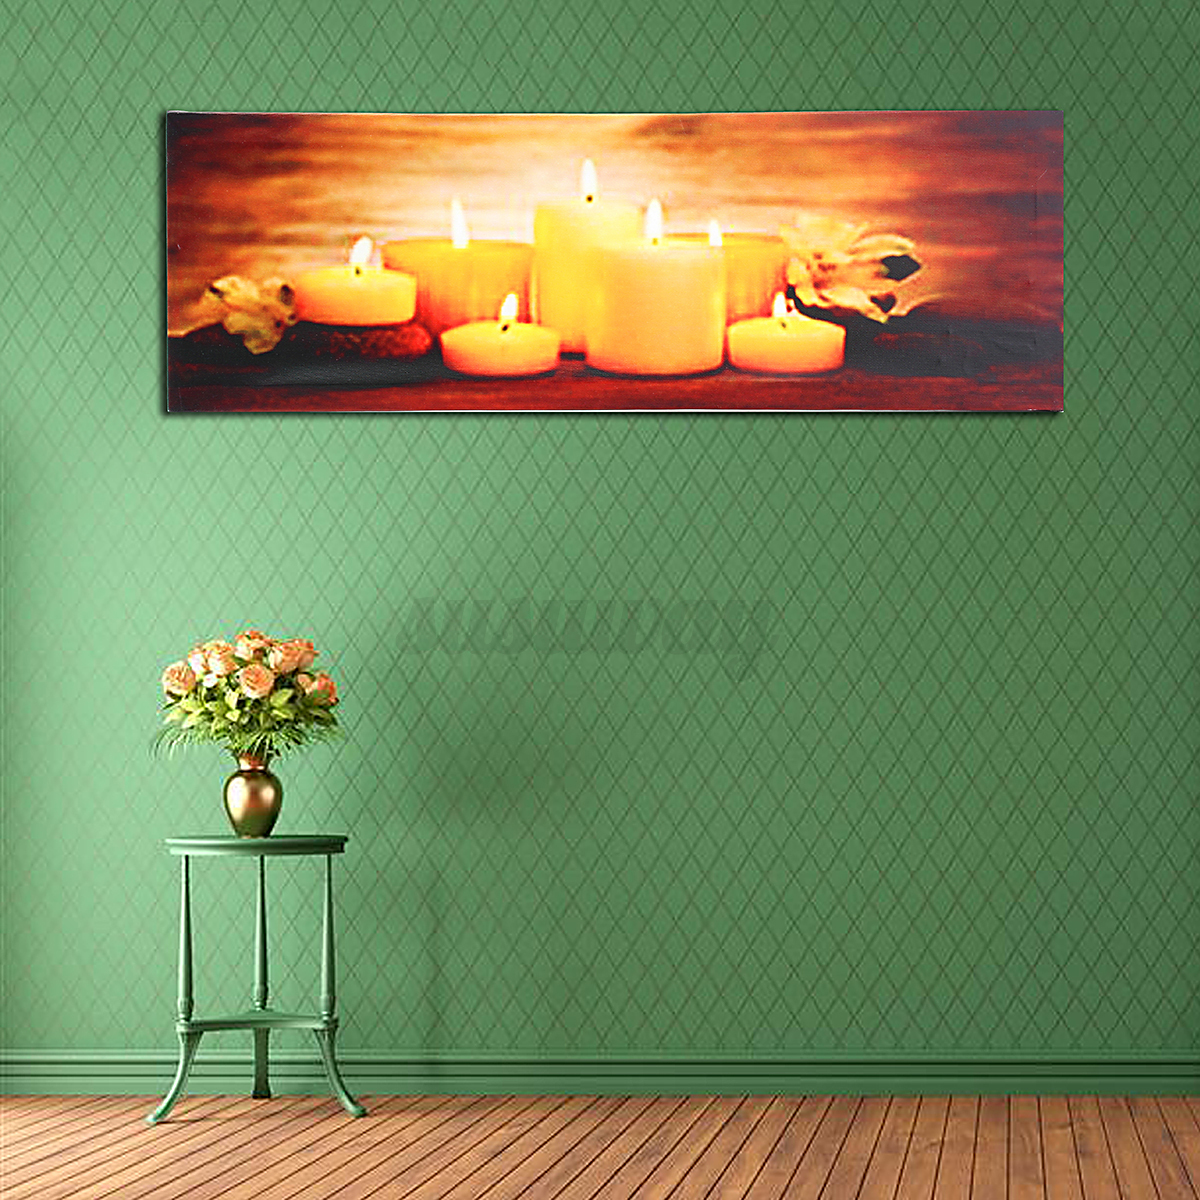 christmas led light up luminous framed canvas painting